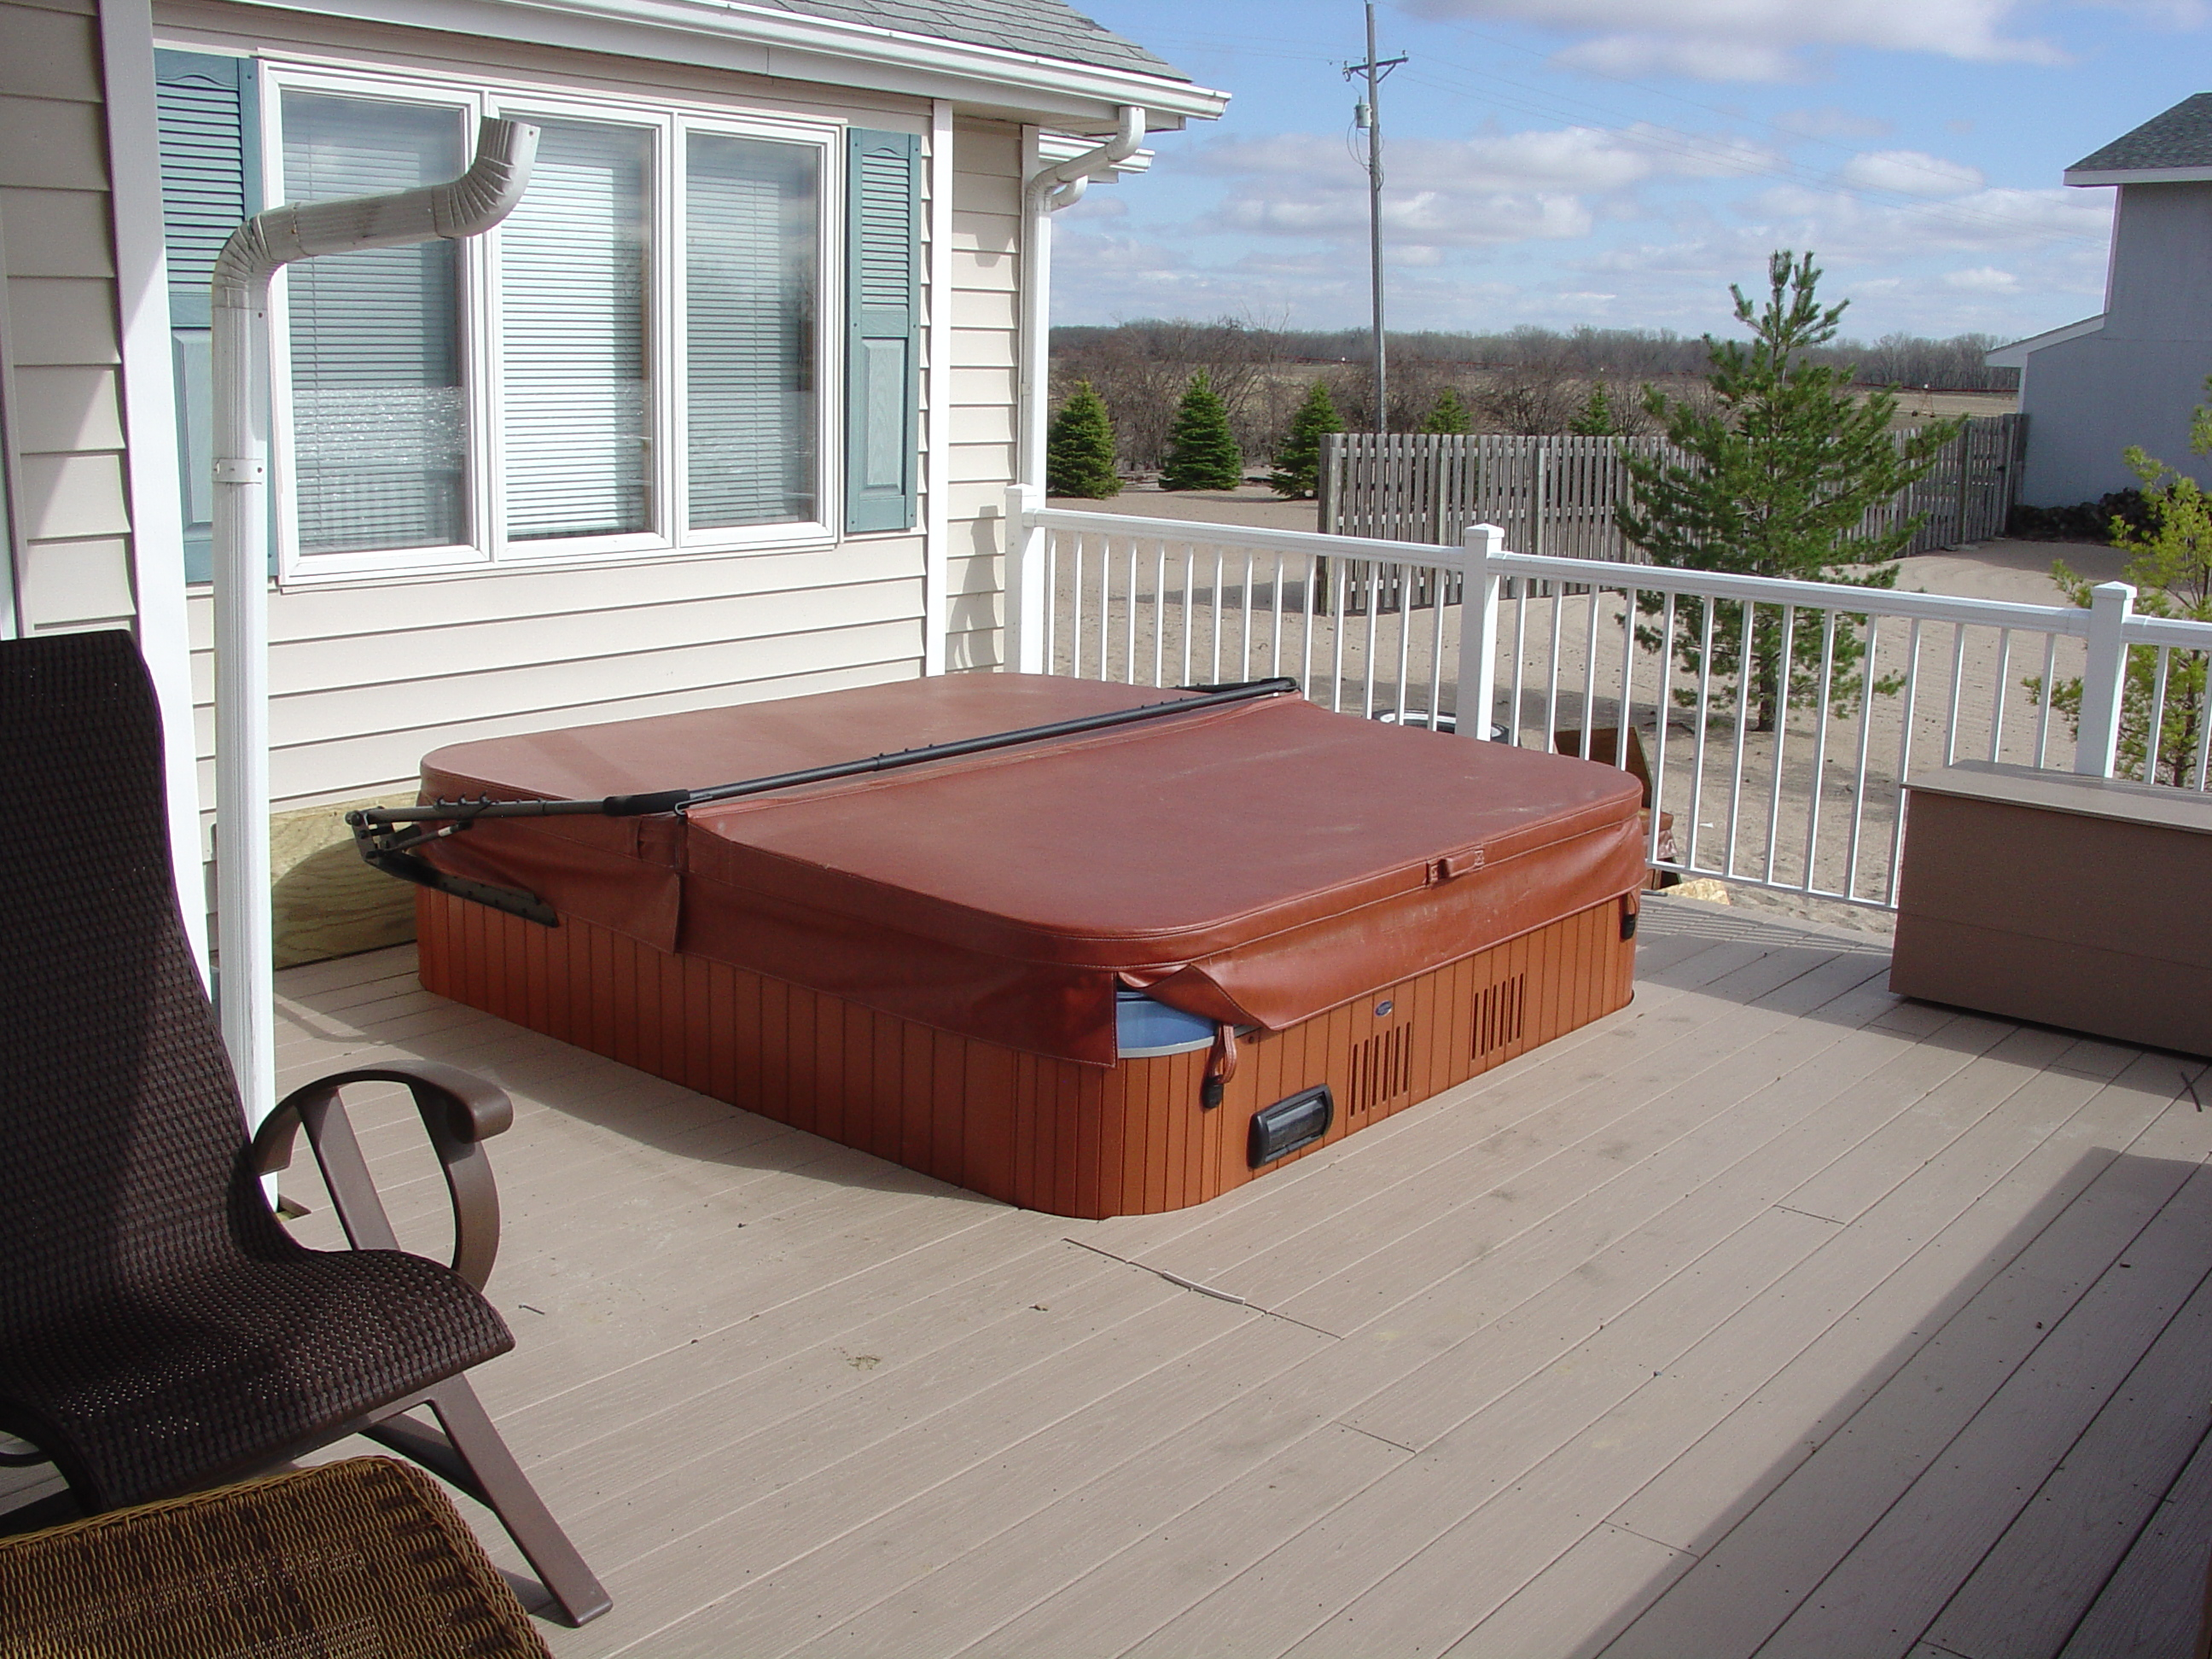 Mike jansen custom cedar decks deck building services for Free standing hot tub deck